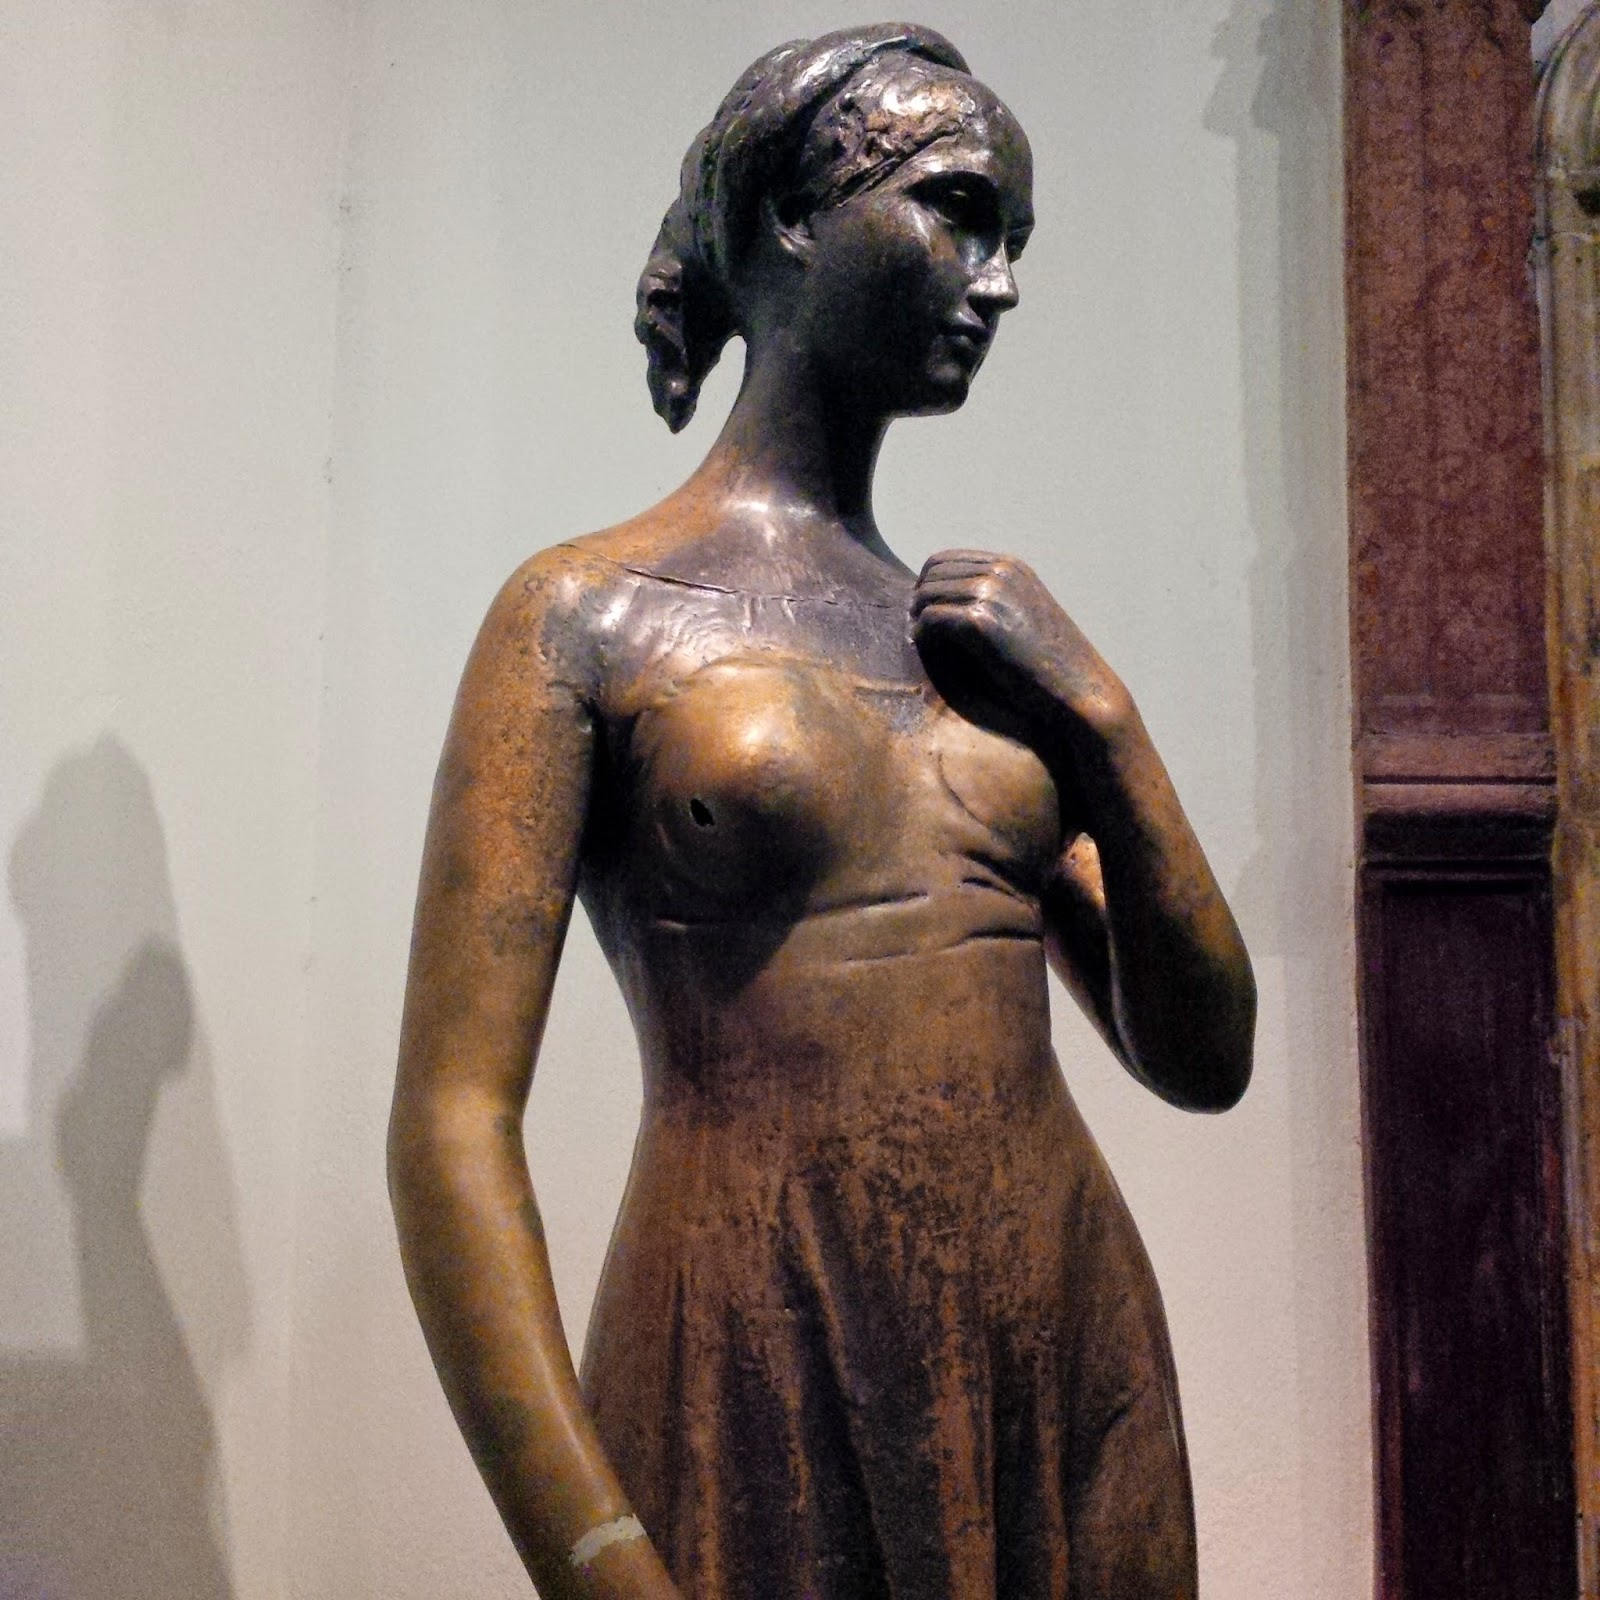 The original statue of Juliet in Juliet's House